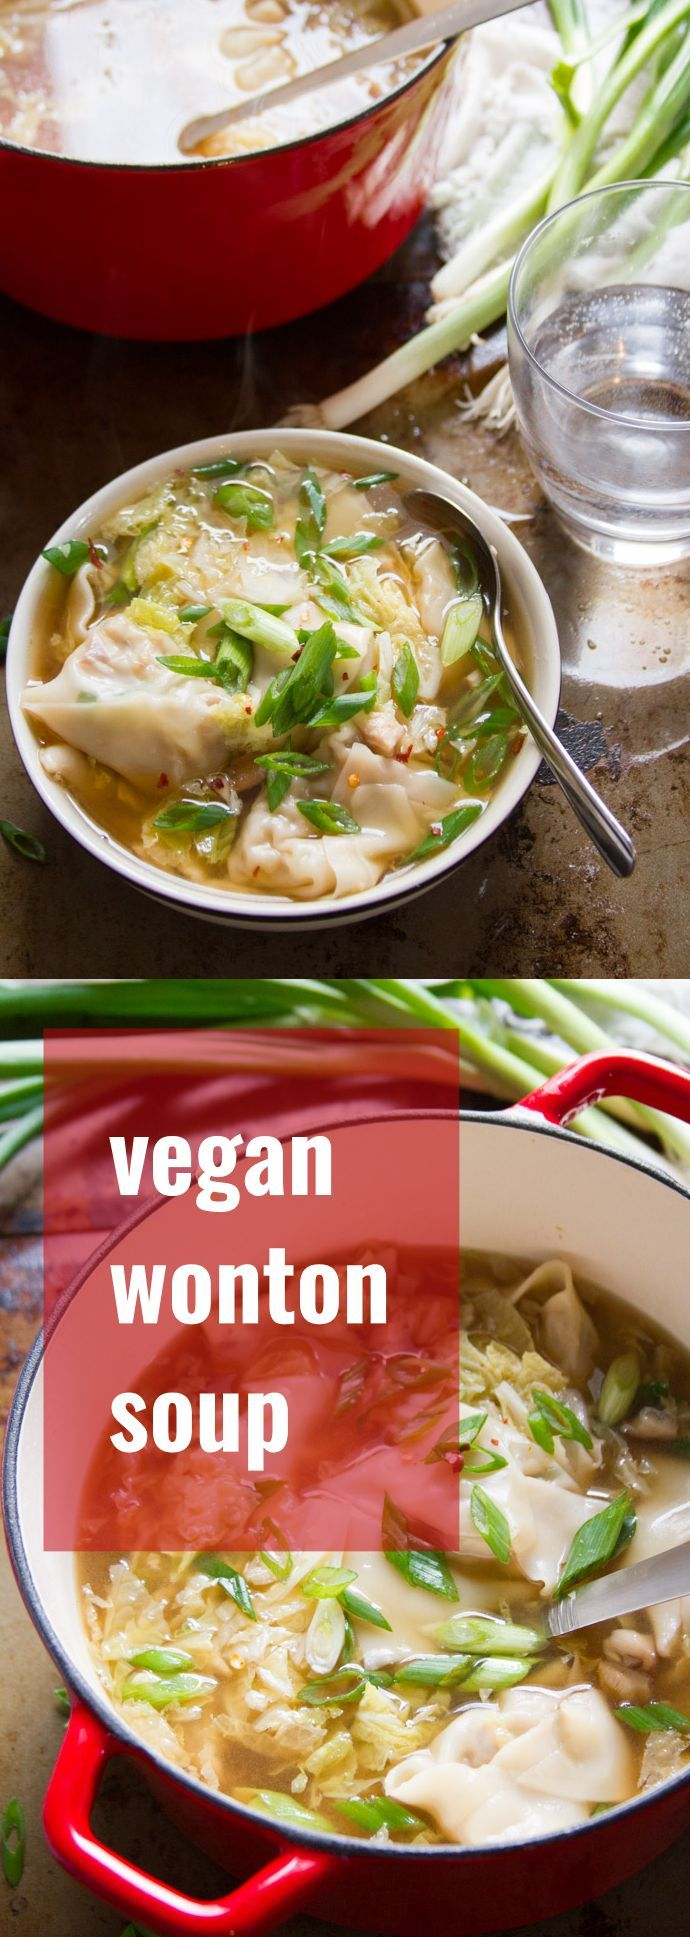 This vegan wonton soup is made with savory shiitake stuffed wontons and crispy napa cabbage in a light gingery broth.